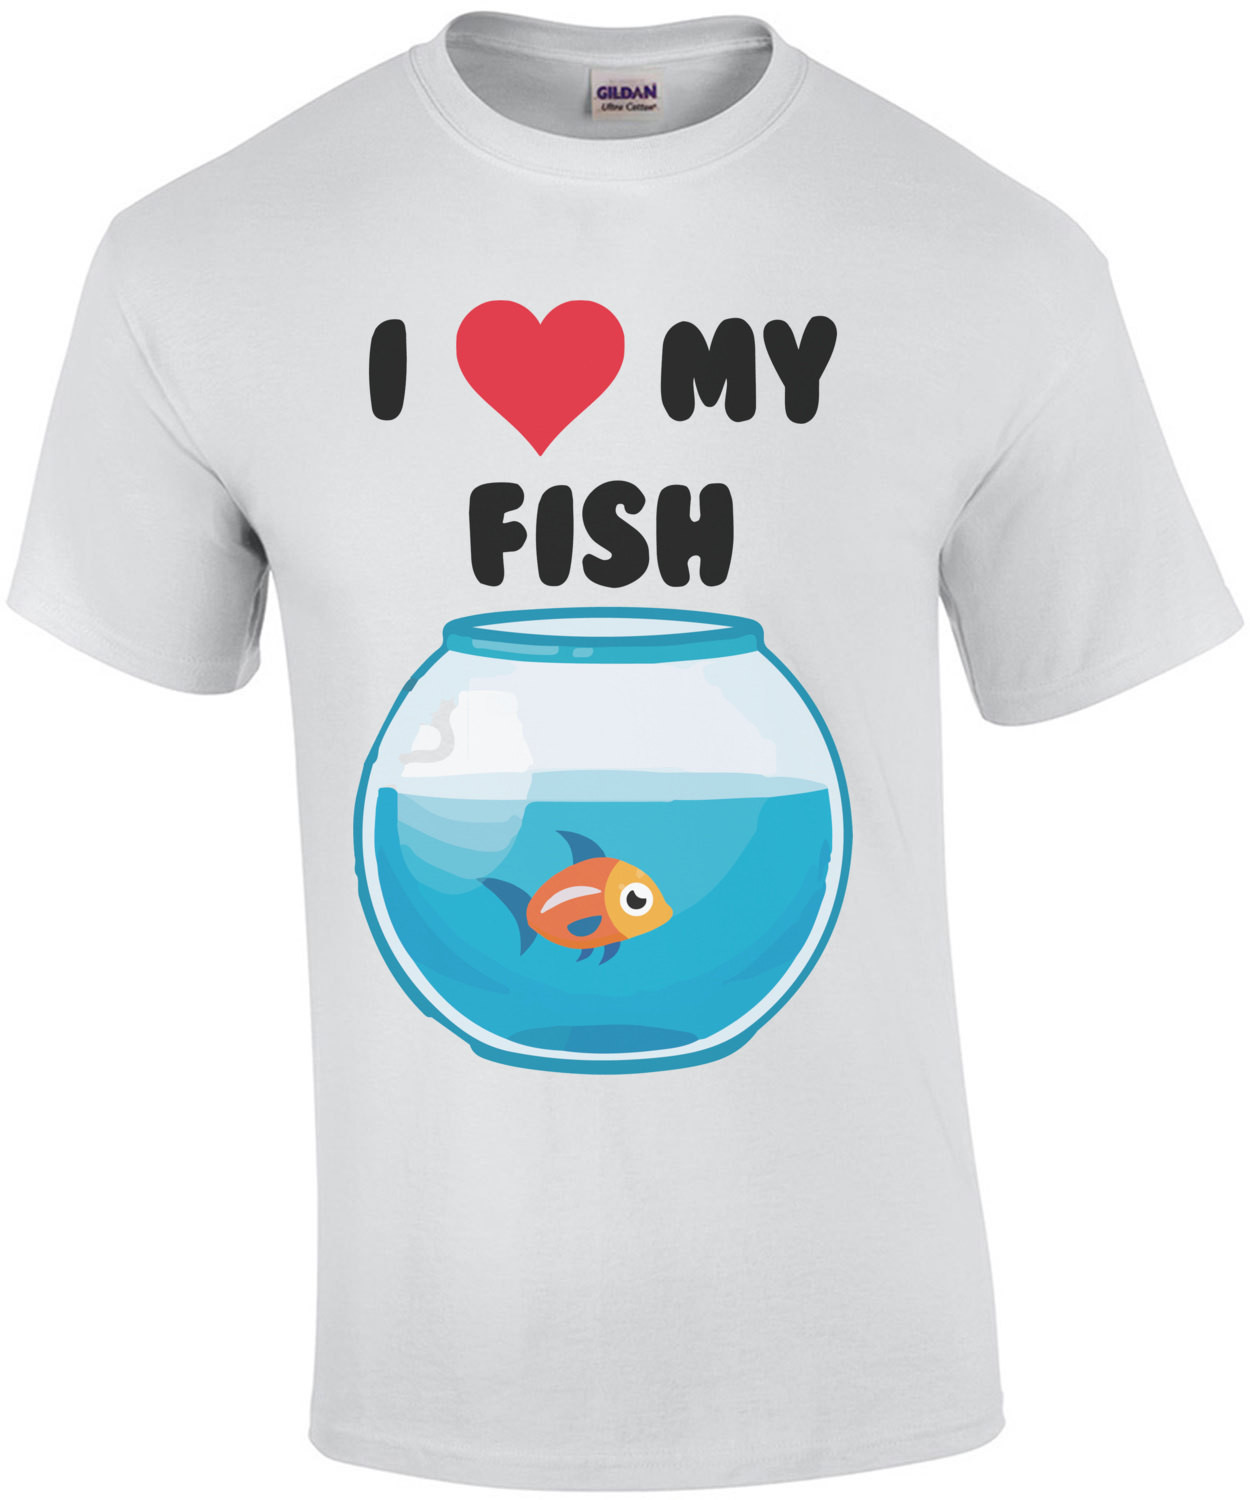 I love my fish - fish t-shirt